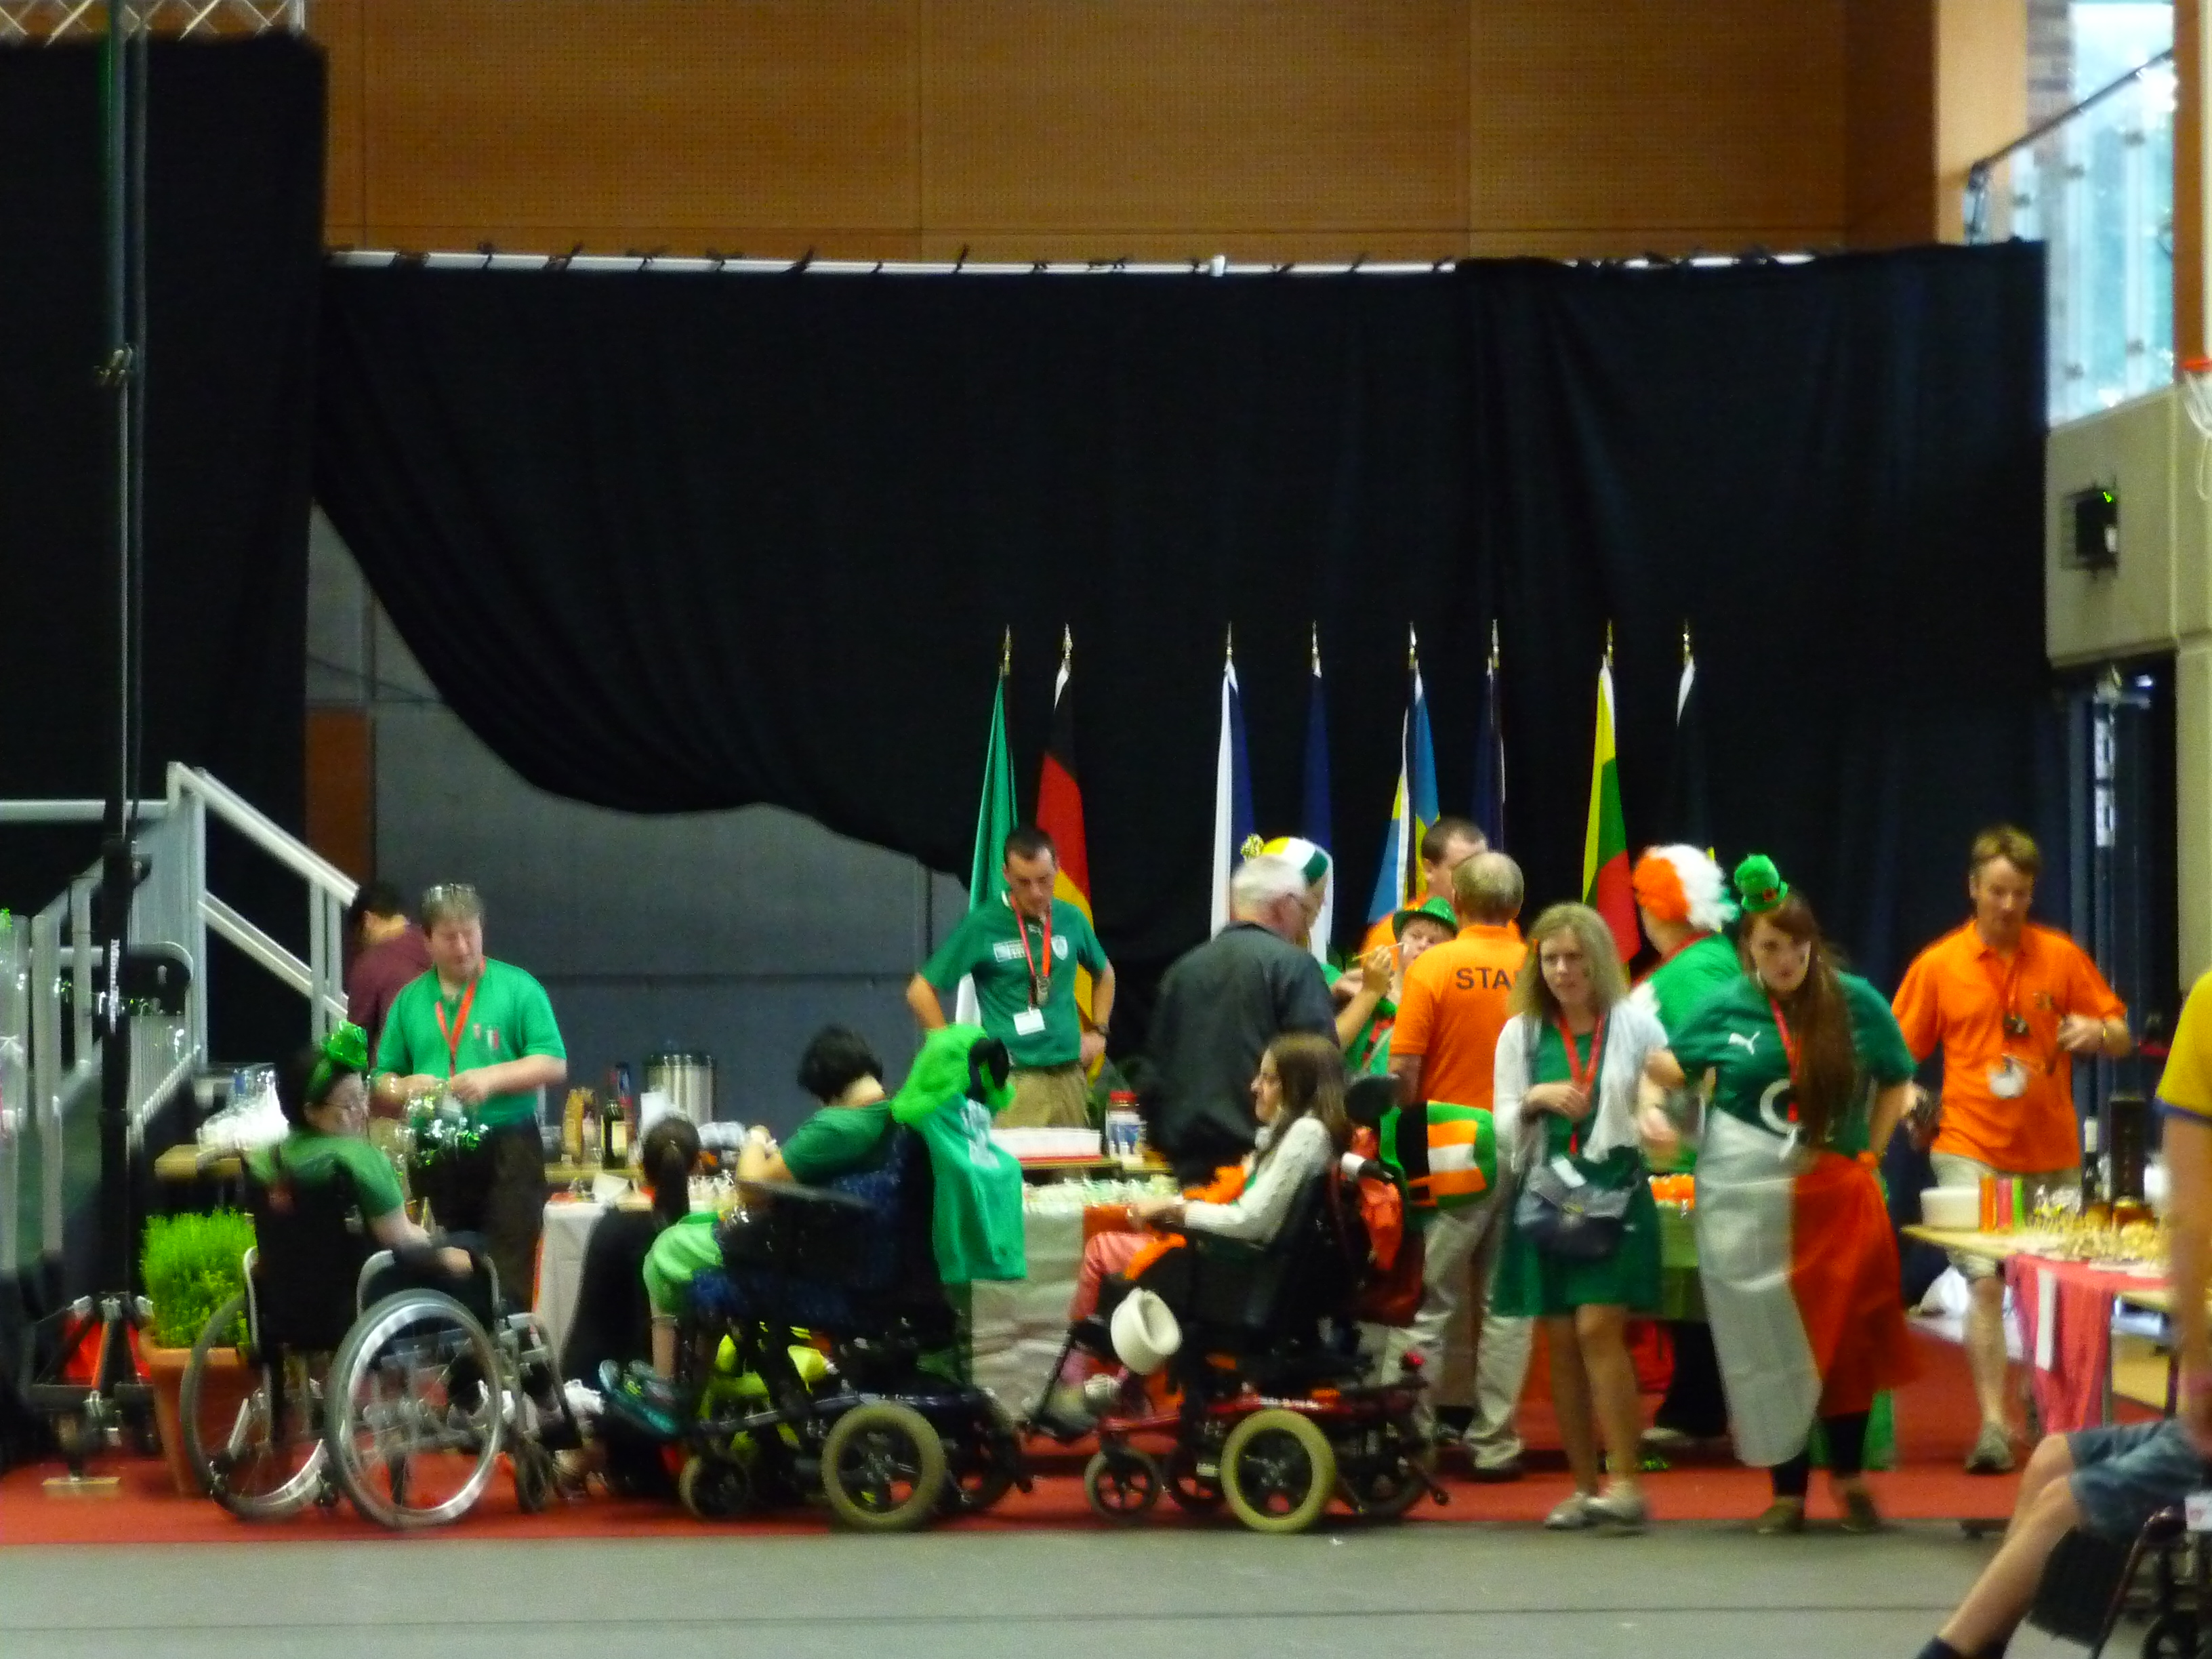 International Camp for the Disabled, Ireland